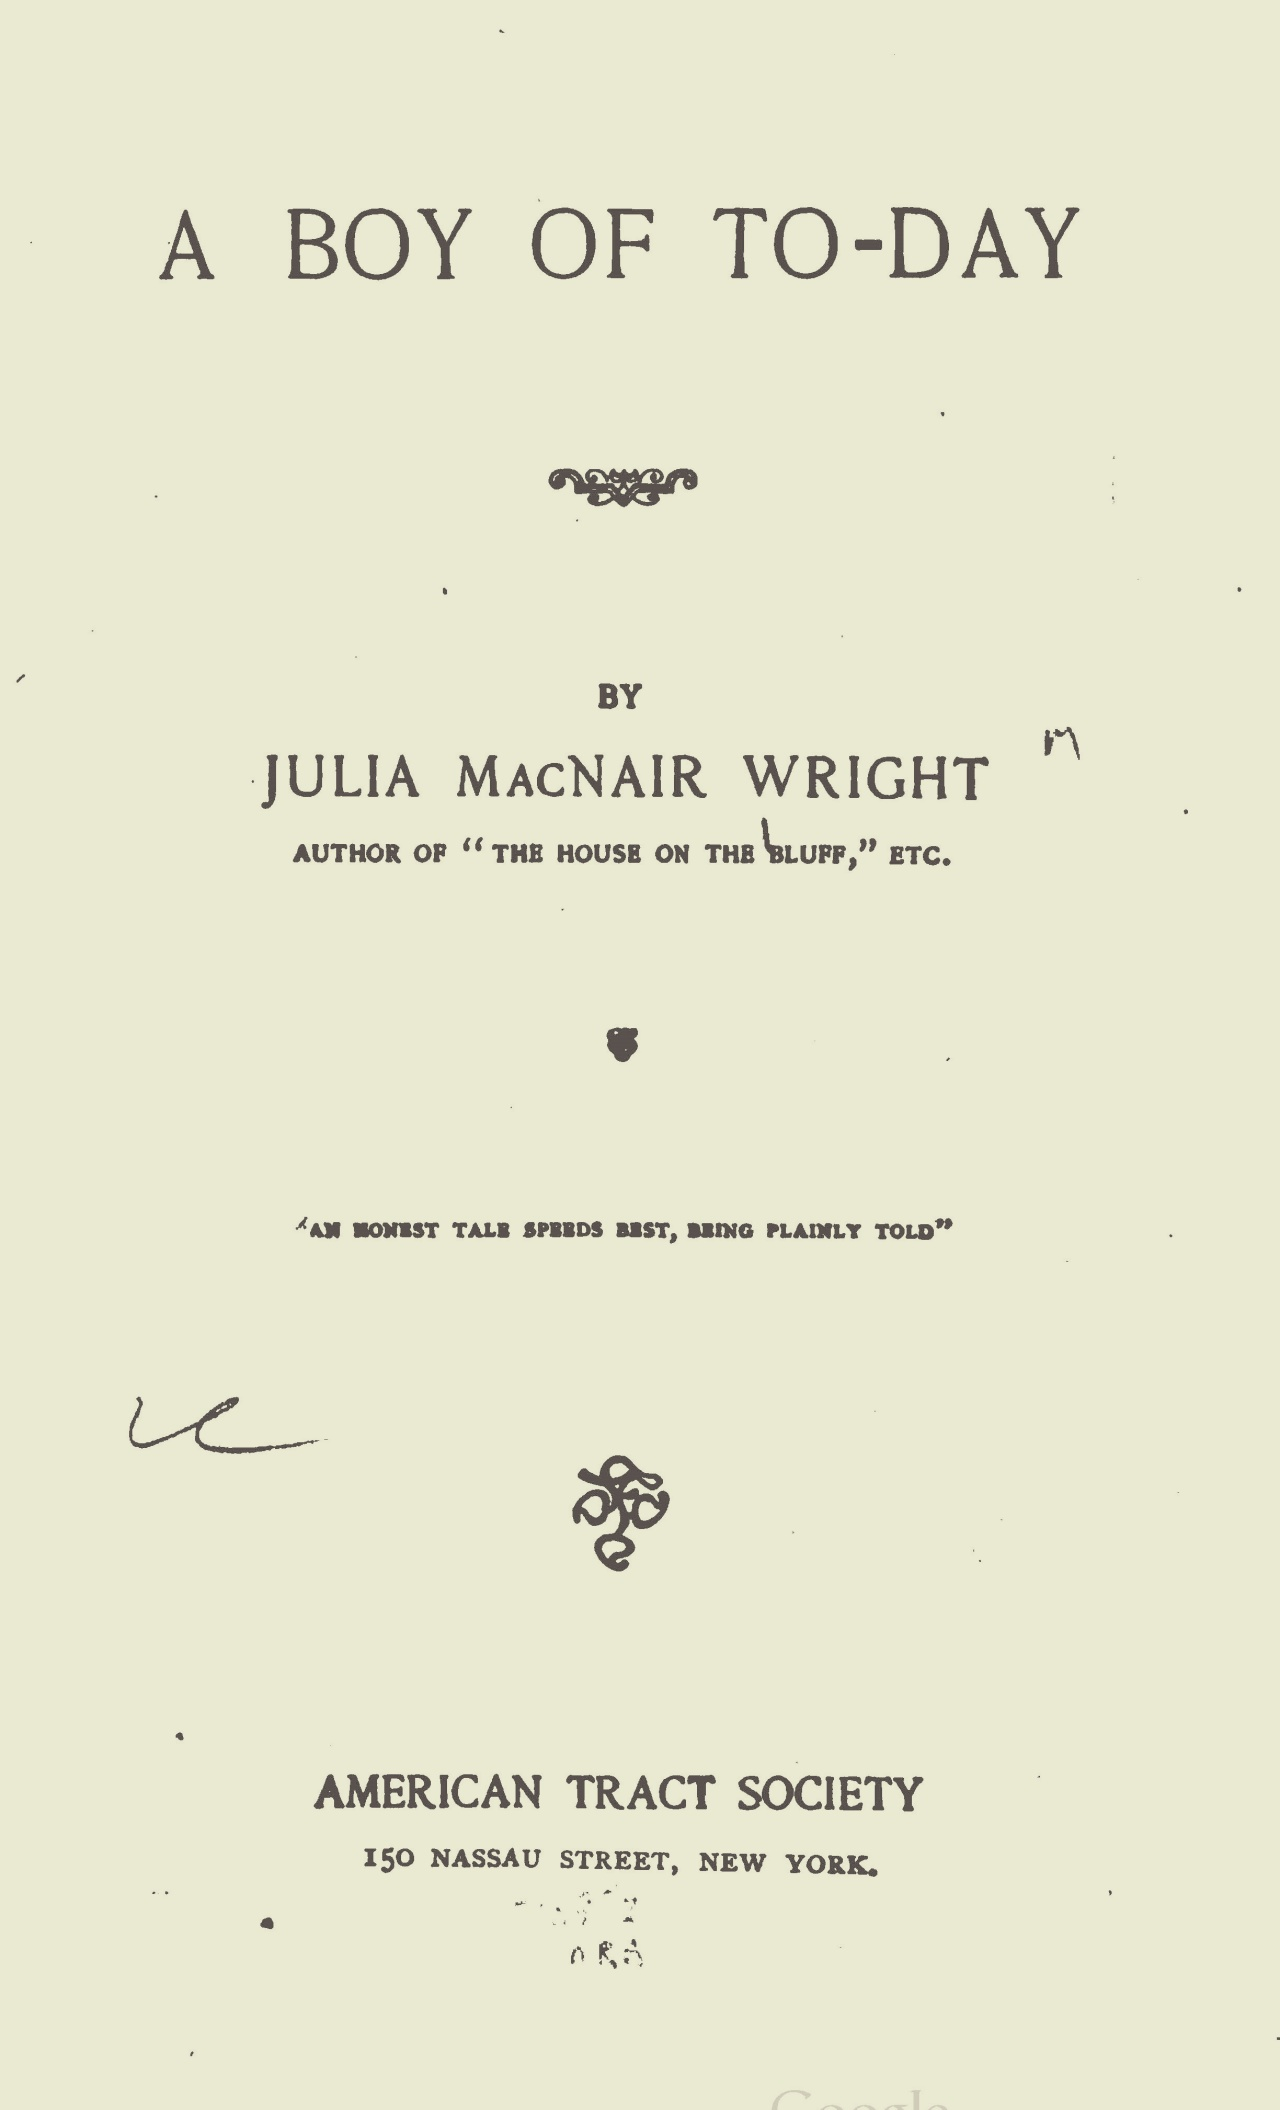 Wright, Julia McNair, A Boy of To-Day Title Page.jpg